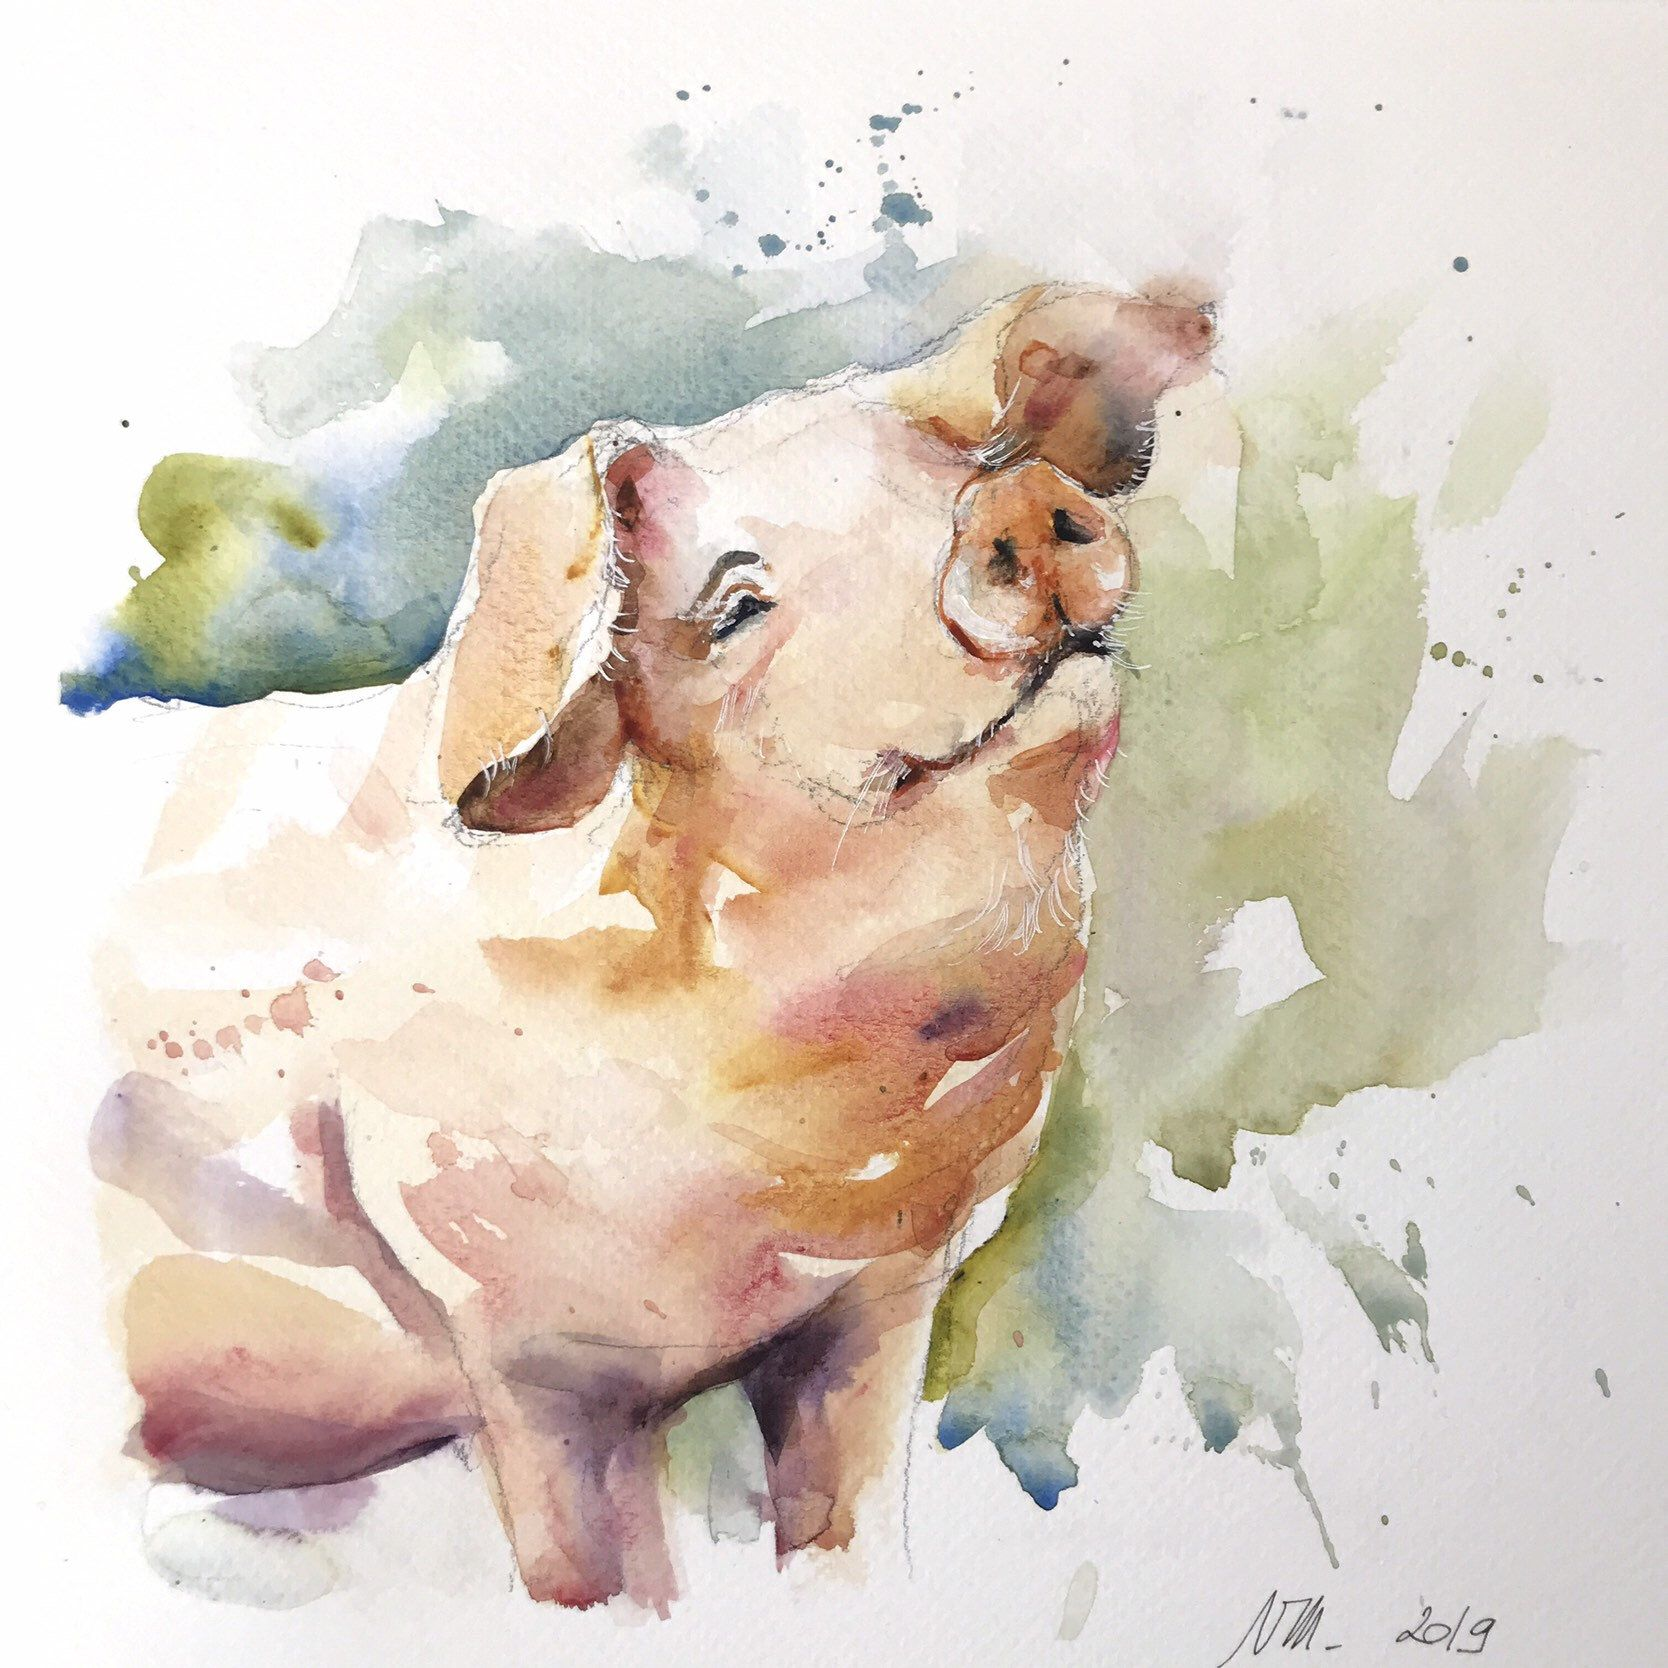 Epingle Sur Aquarelles